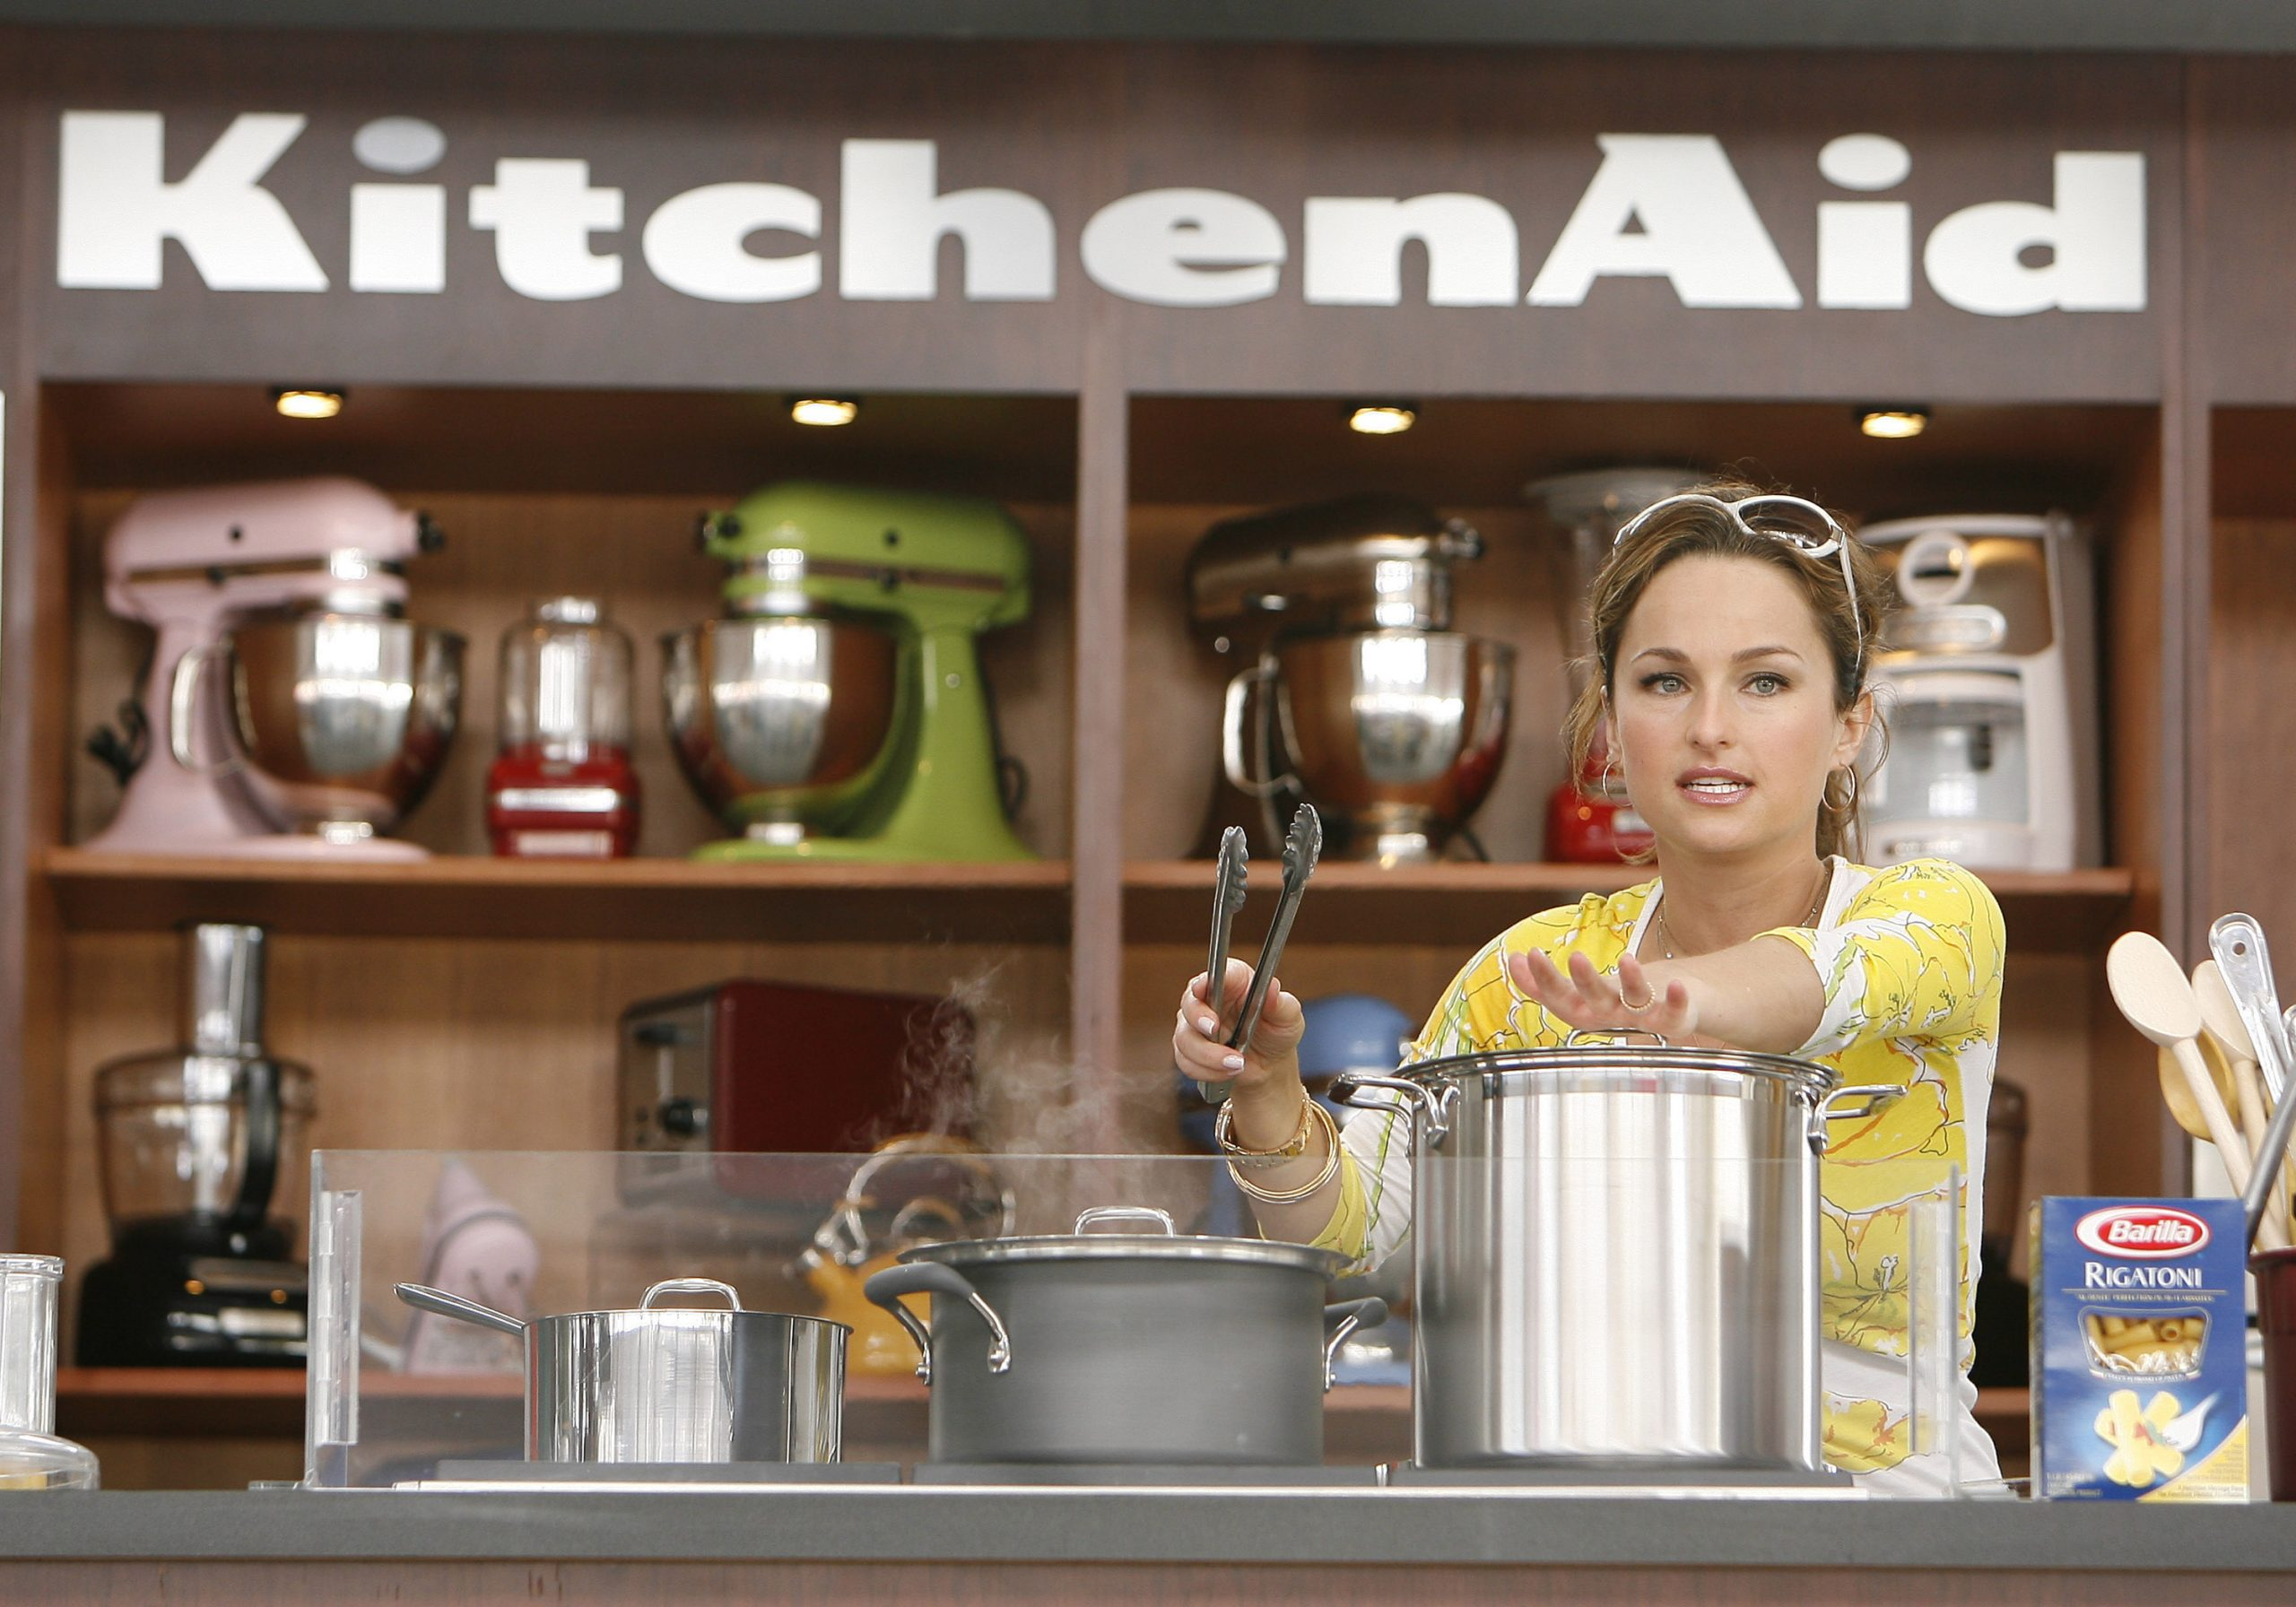 Celebrity chef Giada De Laurentiis wears sunglasses atop her head and a bright yellow and white three-quarter-sleeve top as she demonstrates preparation of a recipe.